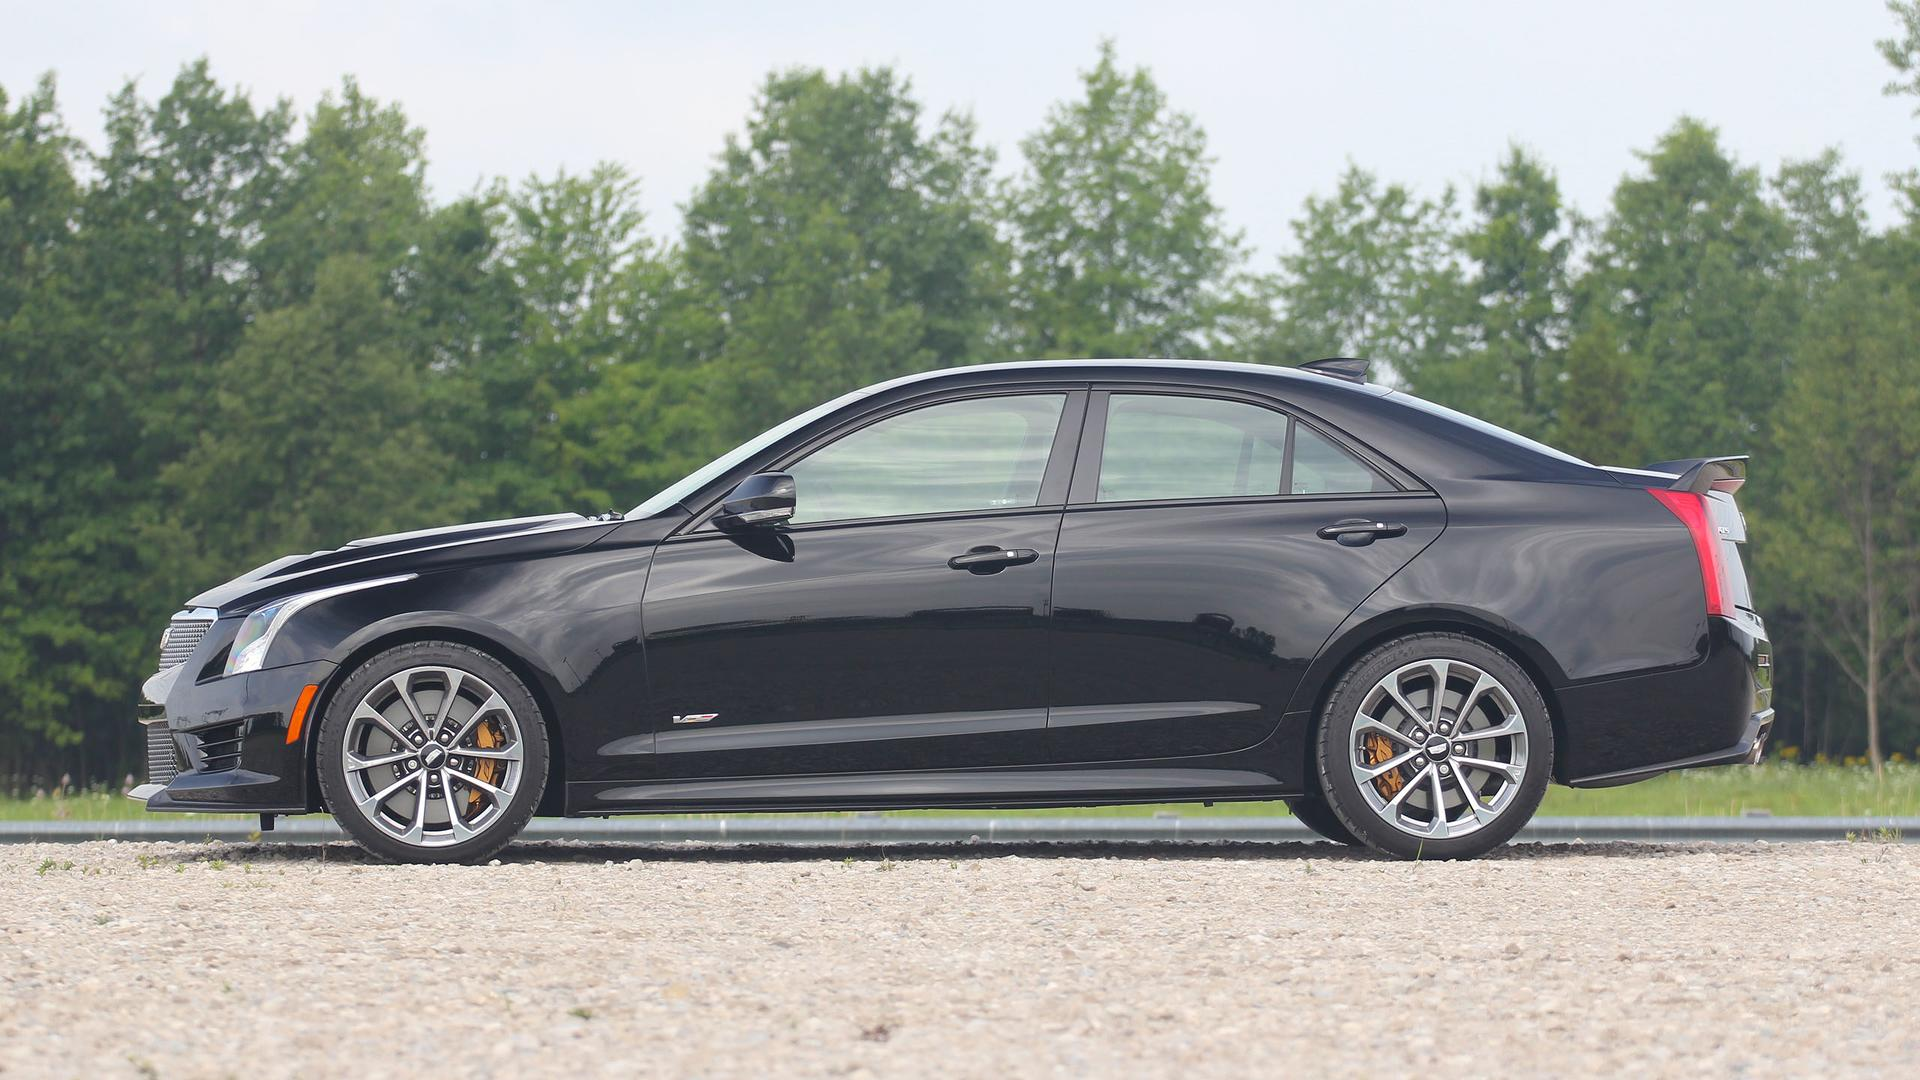 Cadillac Ats Sedan >> Cadillac Ats Sedan Discontinued For 2019 Model Year